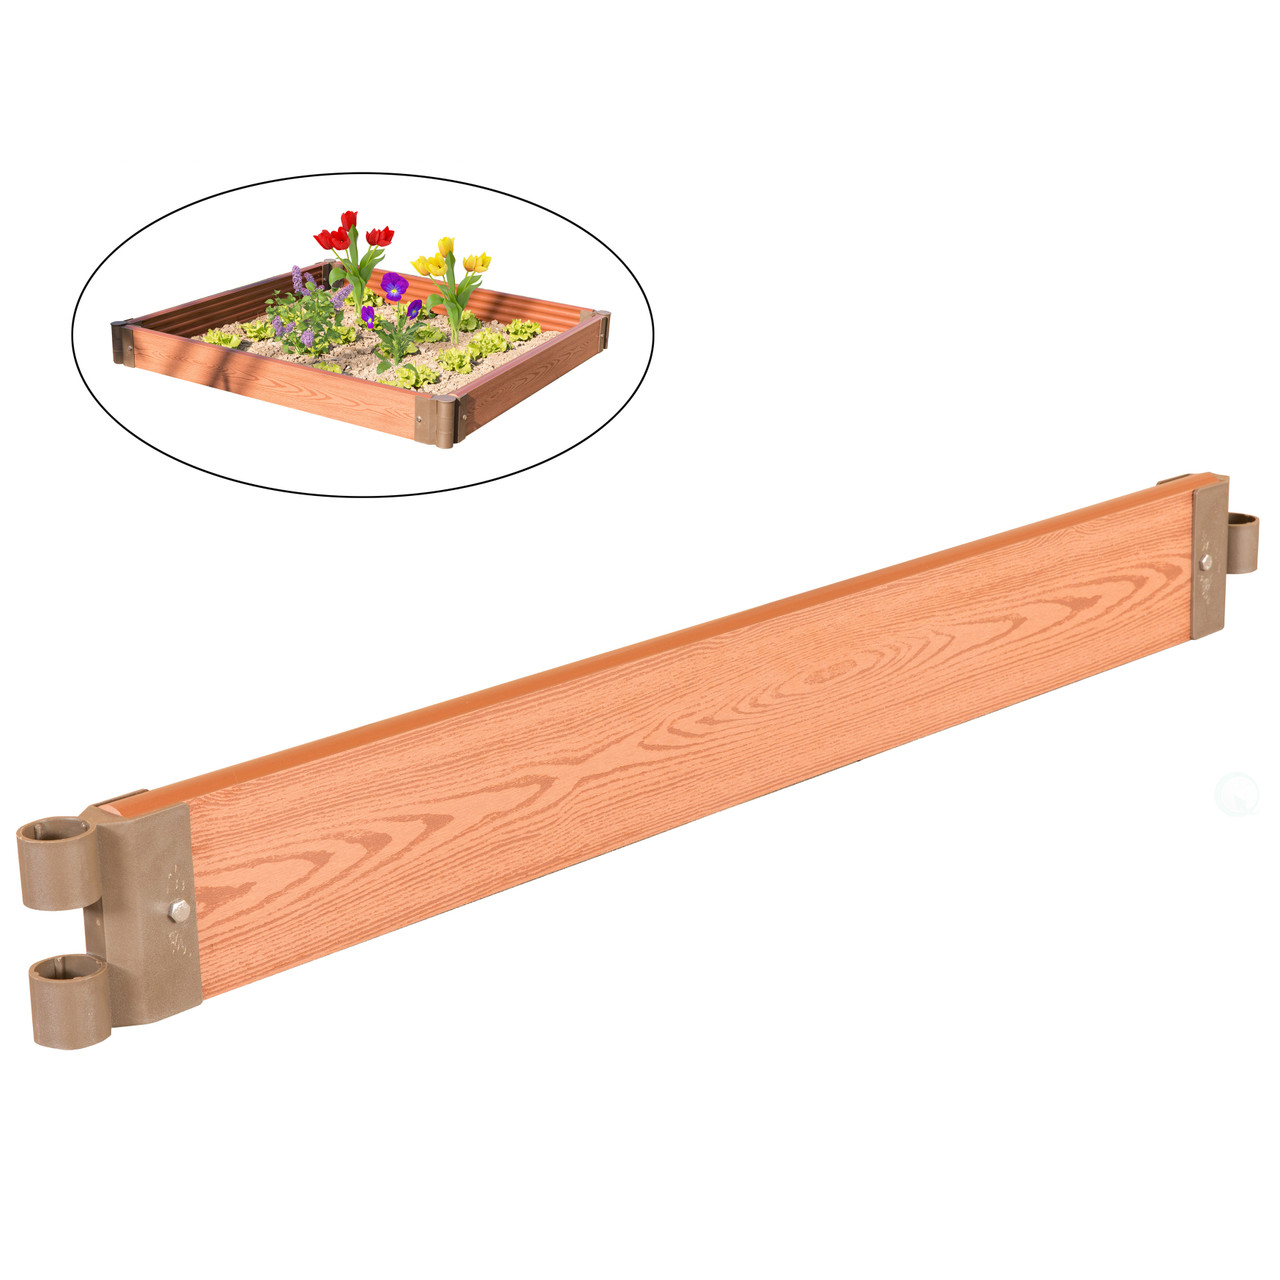 classic traditional durable wood look raised outdoor garden bed flower planter box